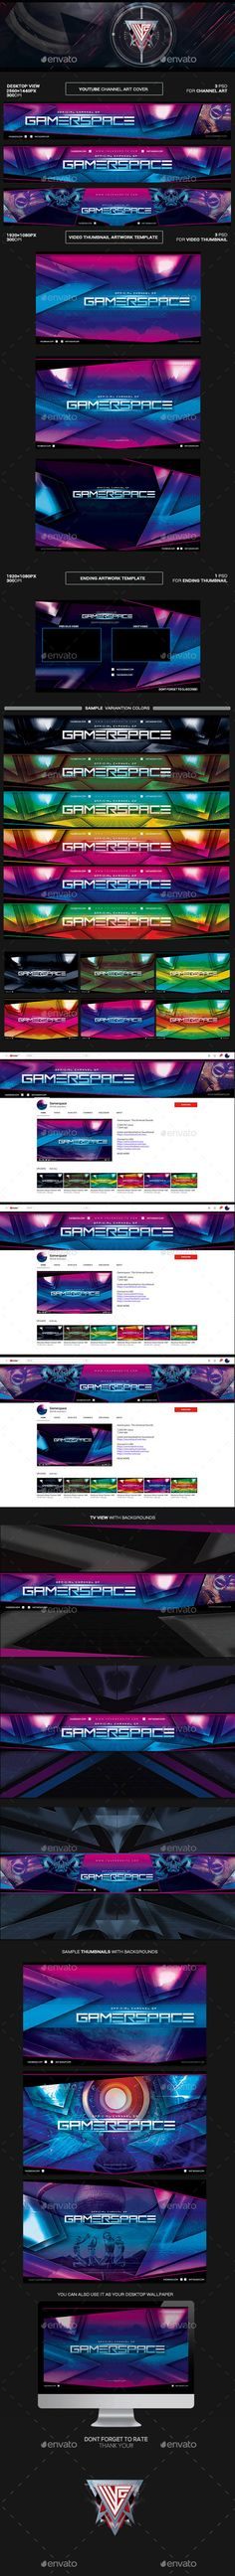 youtube channel art backgrounds